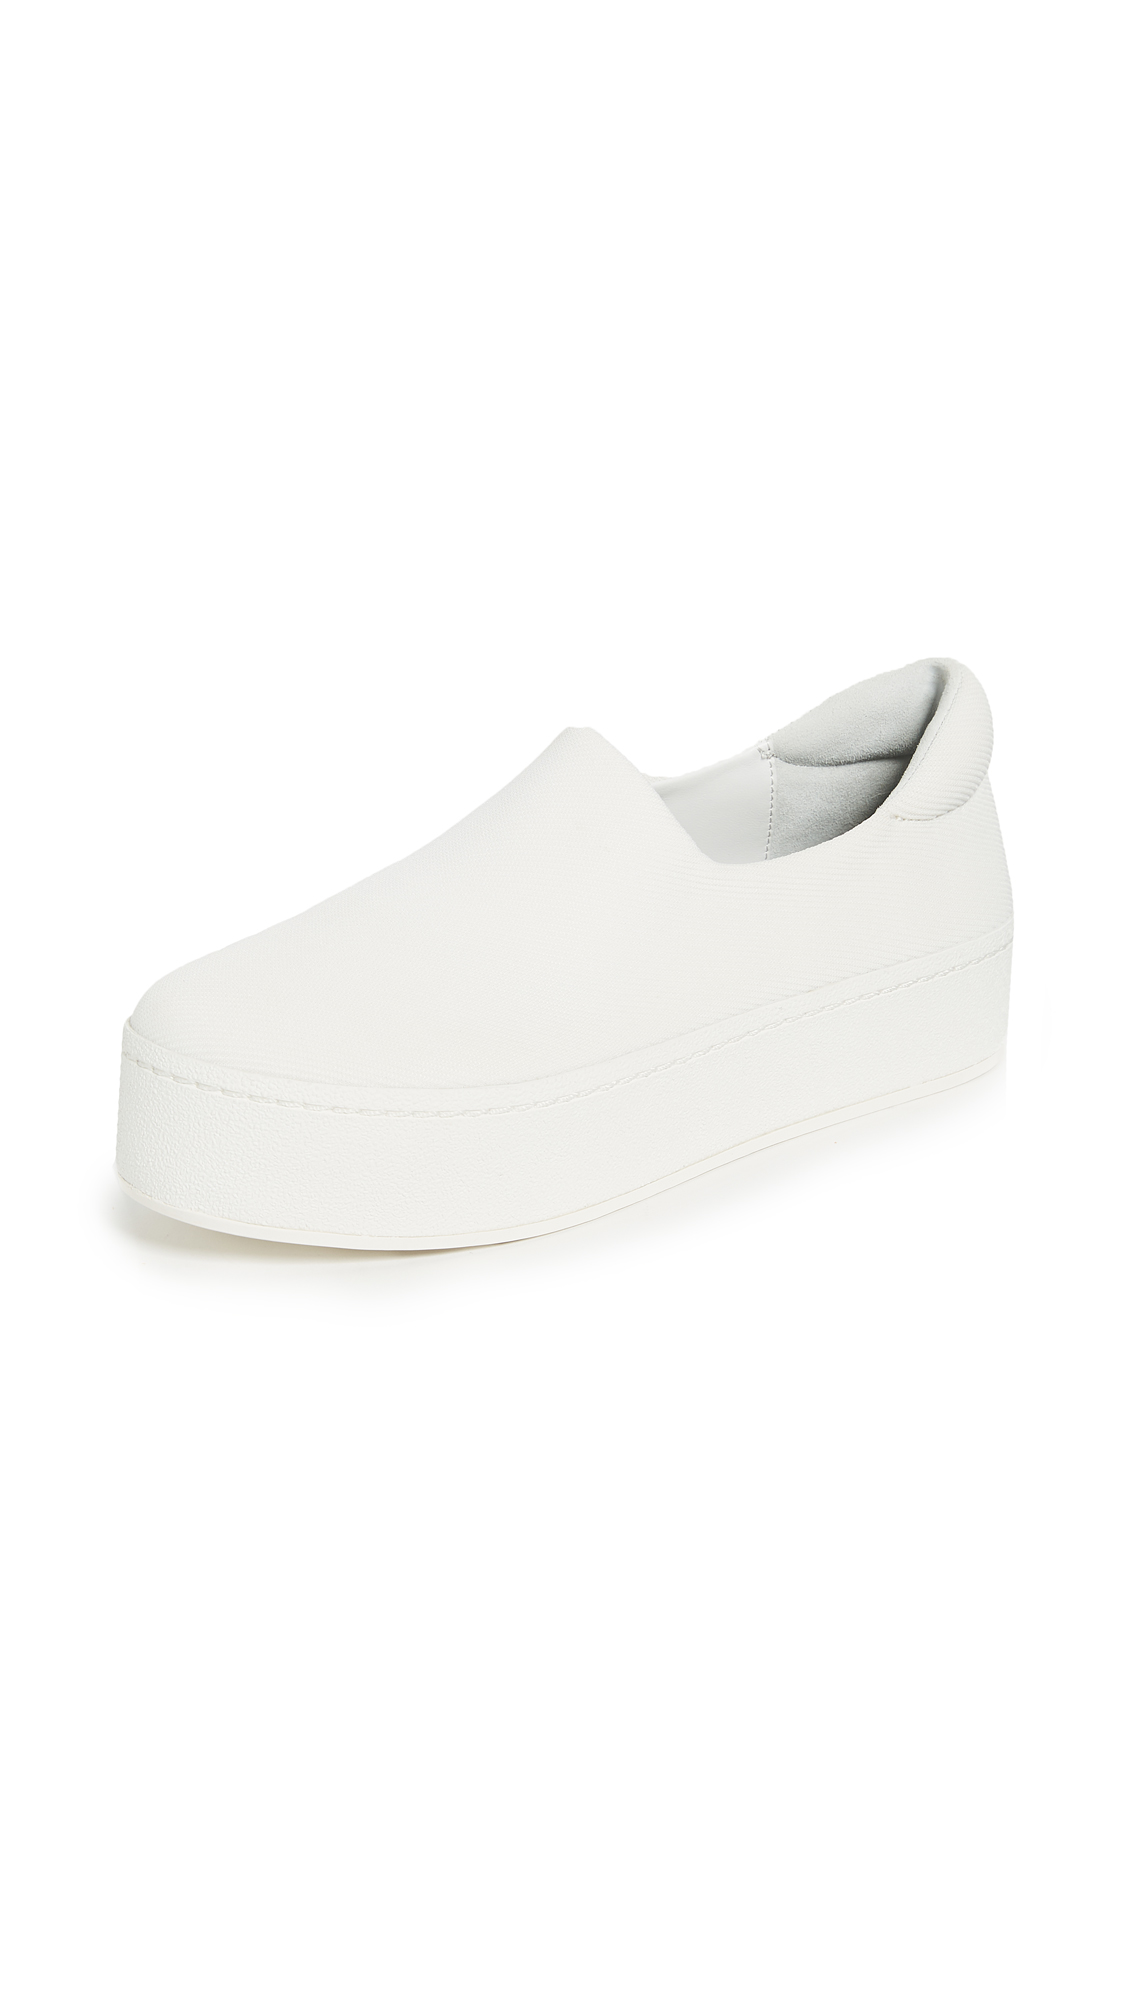 Opening Ceremony Cici Slip On Platform Sneakers - White